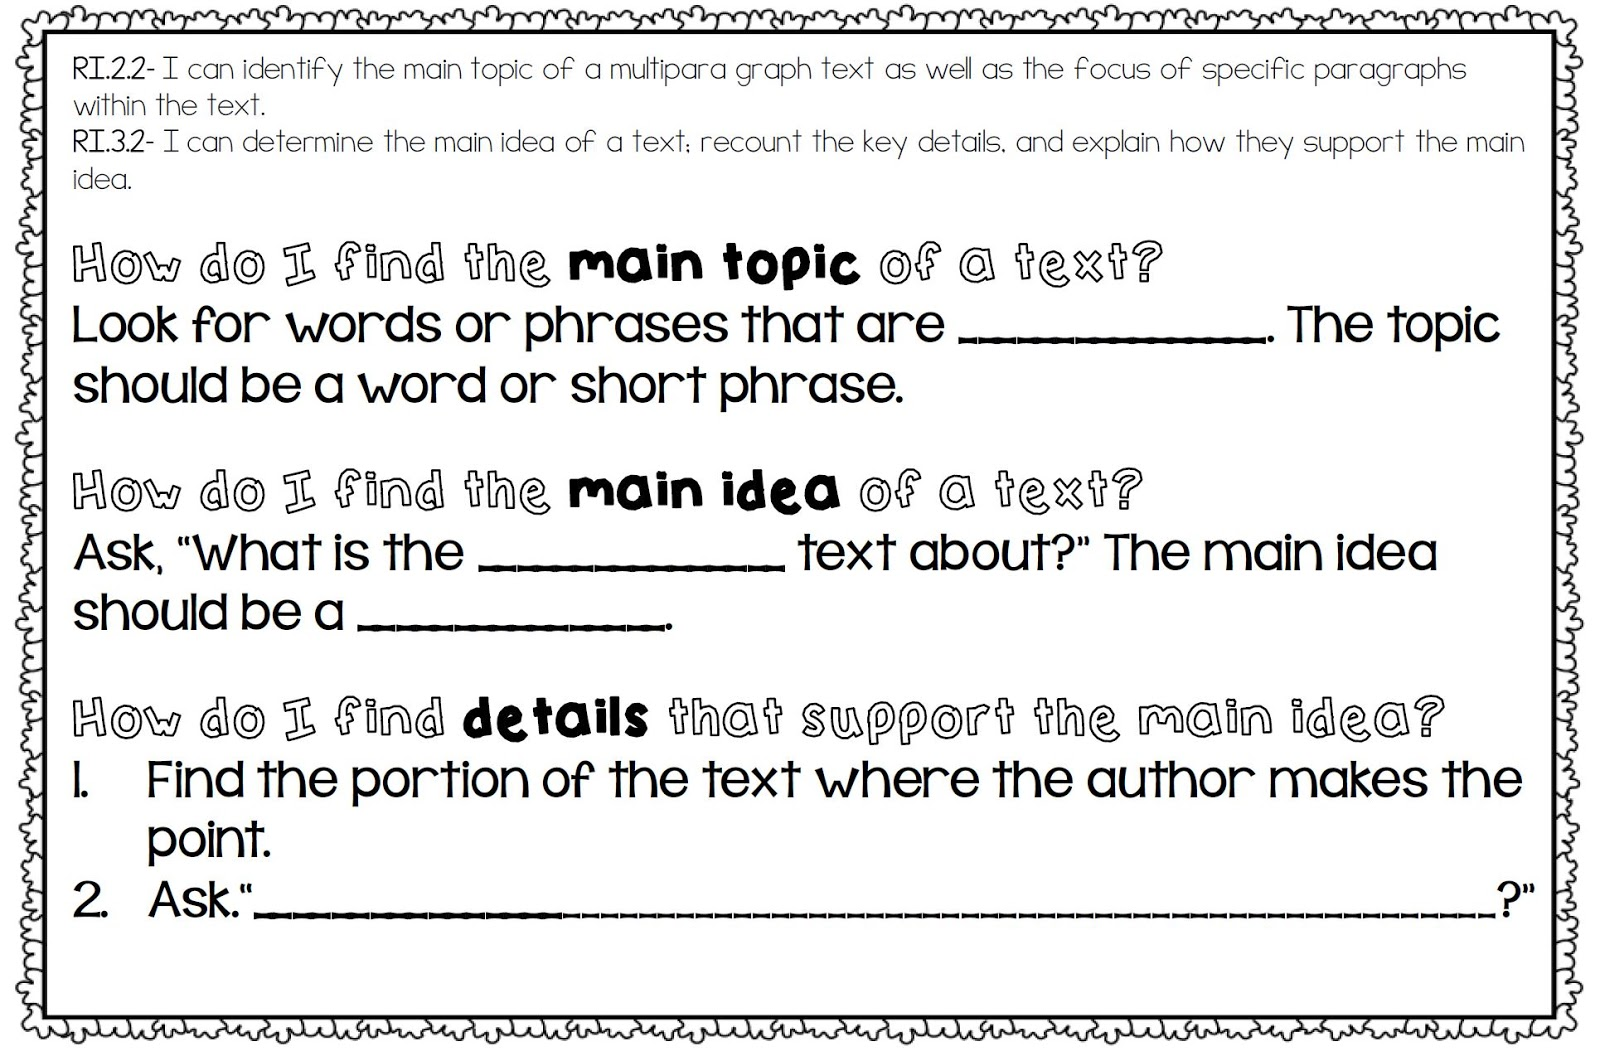 Worksheet Read The Passage And Answer The Questions how i teach the common core reading informational text standards model to read a passage and answer questions based on standard you can put projector or piece of chart